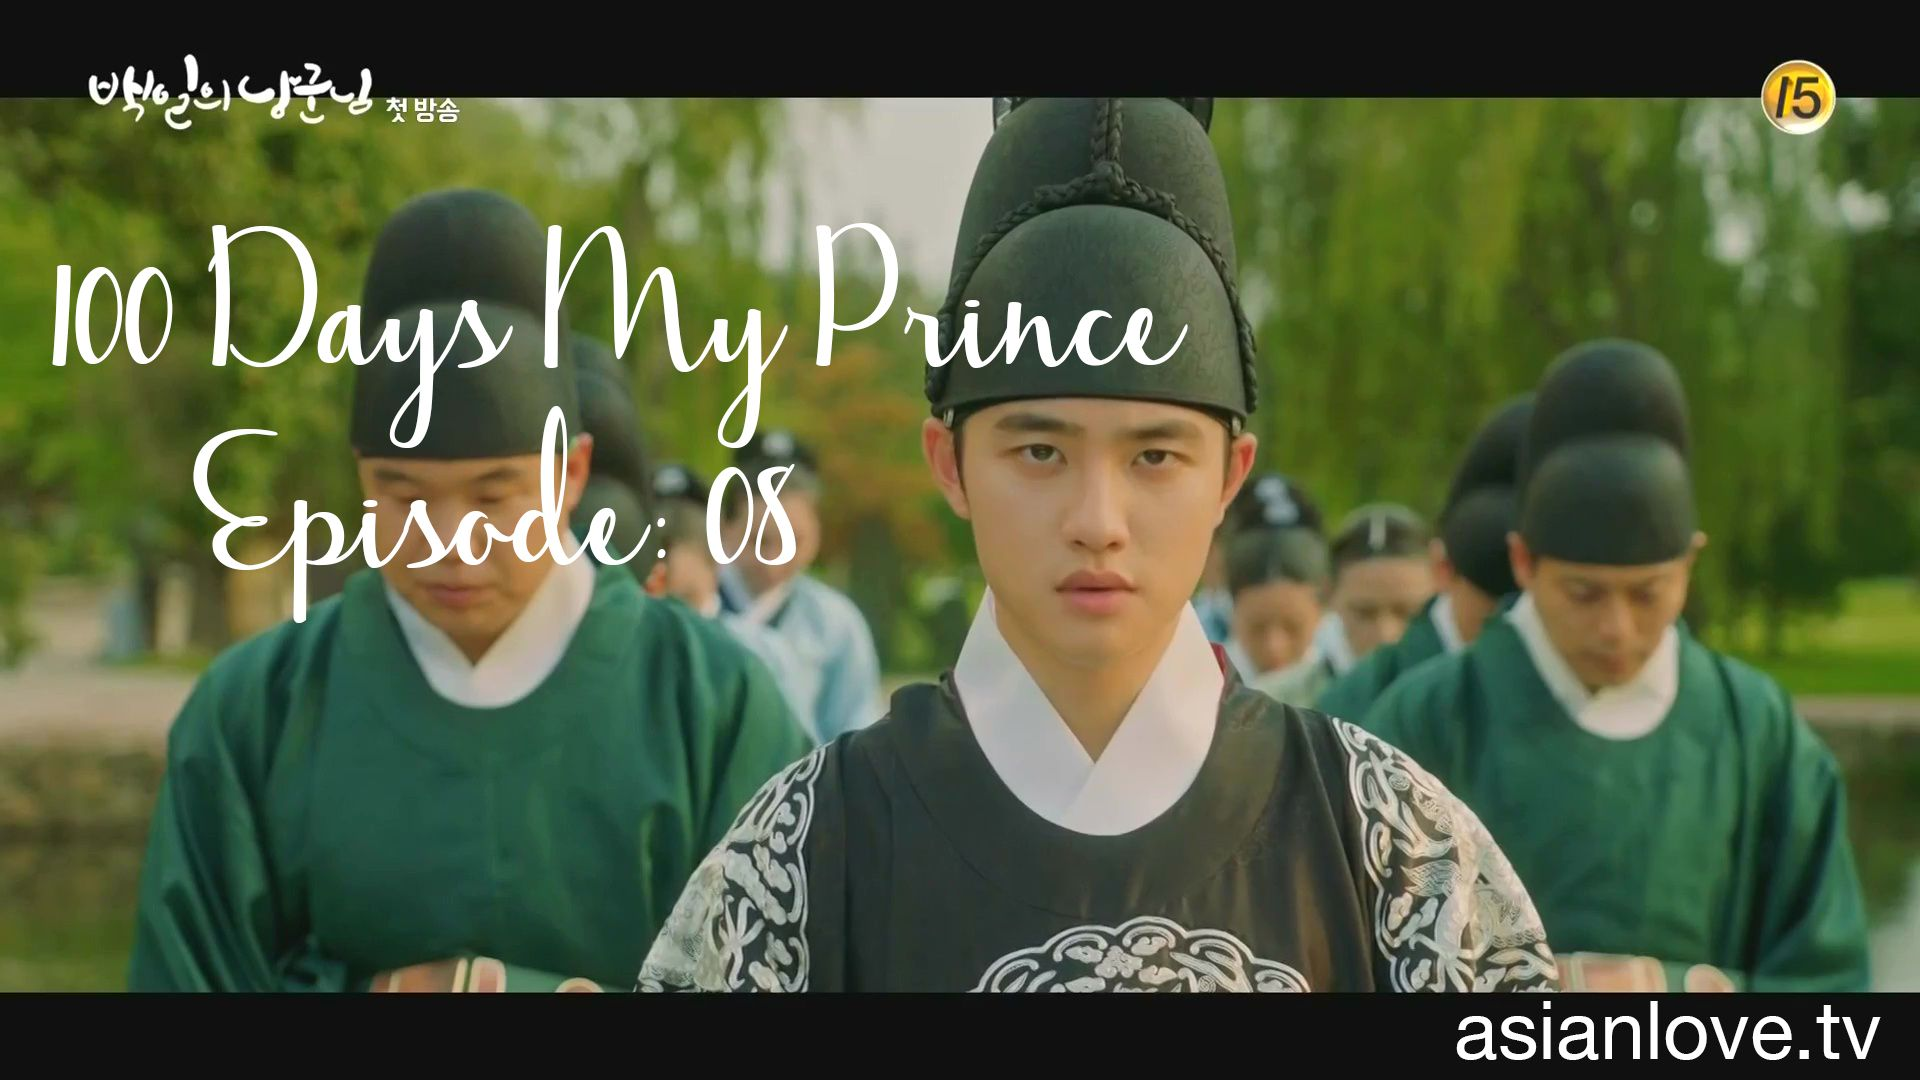 watch online full episodes of the tv series days my prince for